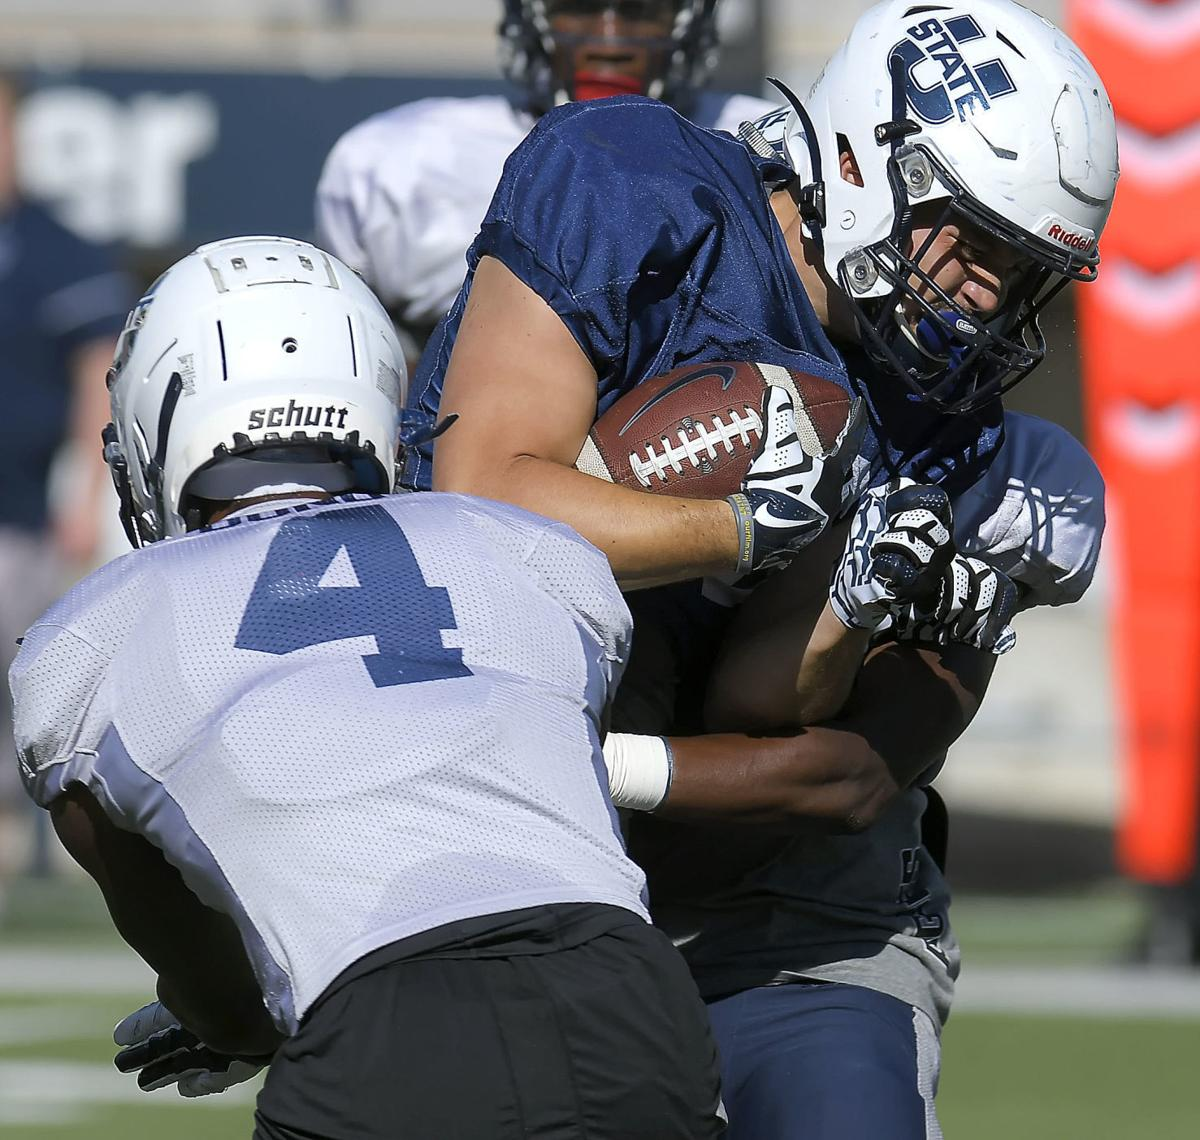 USU's Bond shines during Saturday's situational scrimmage